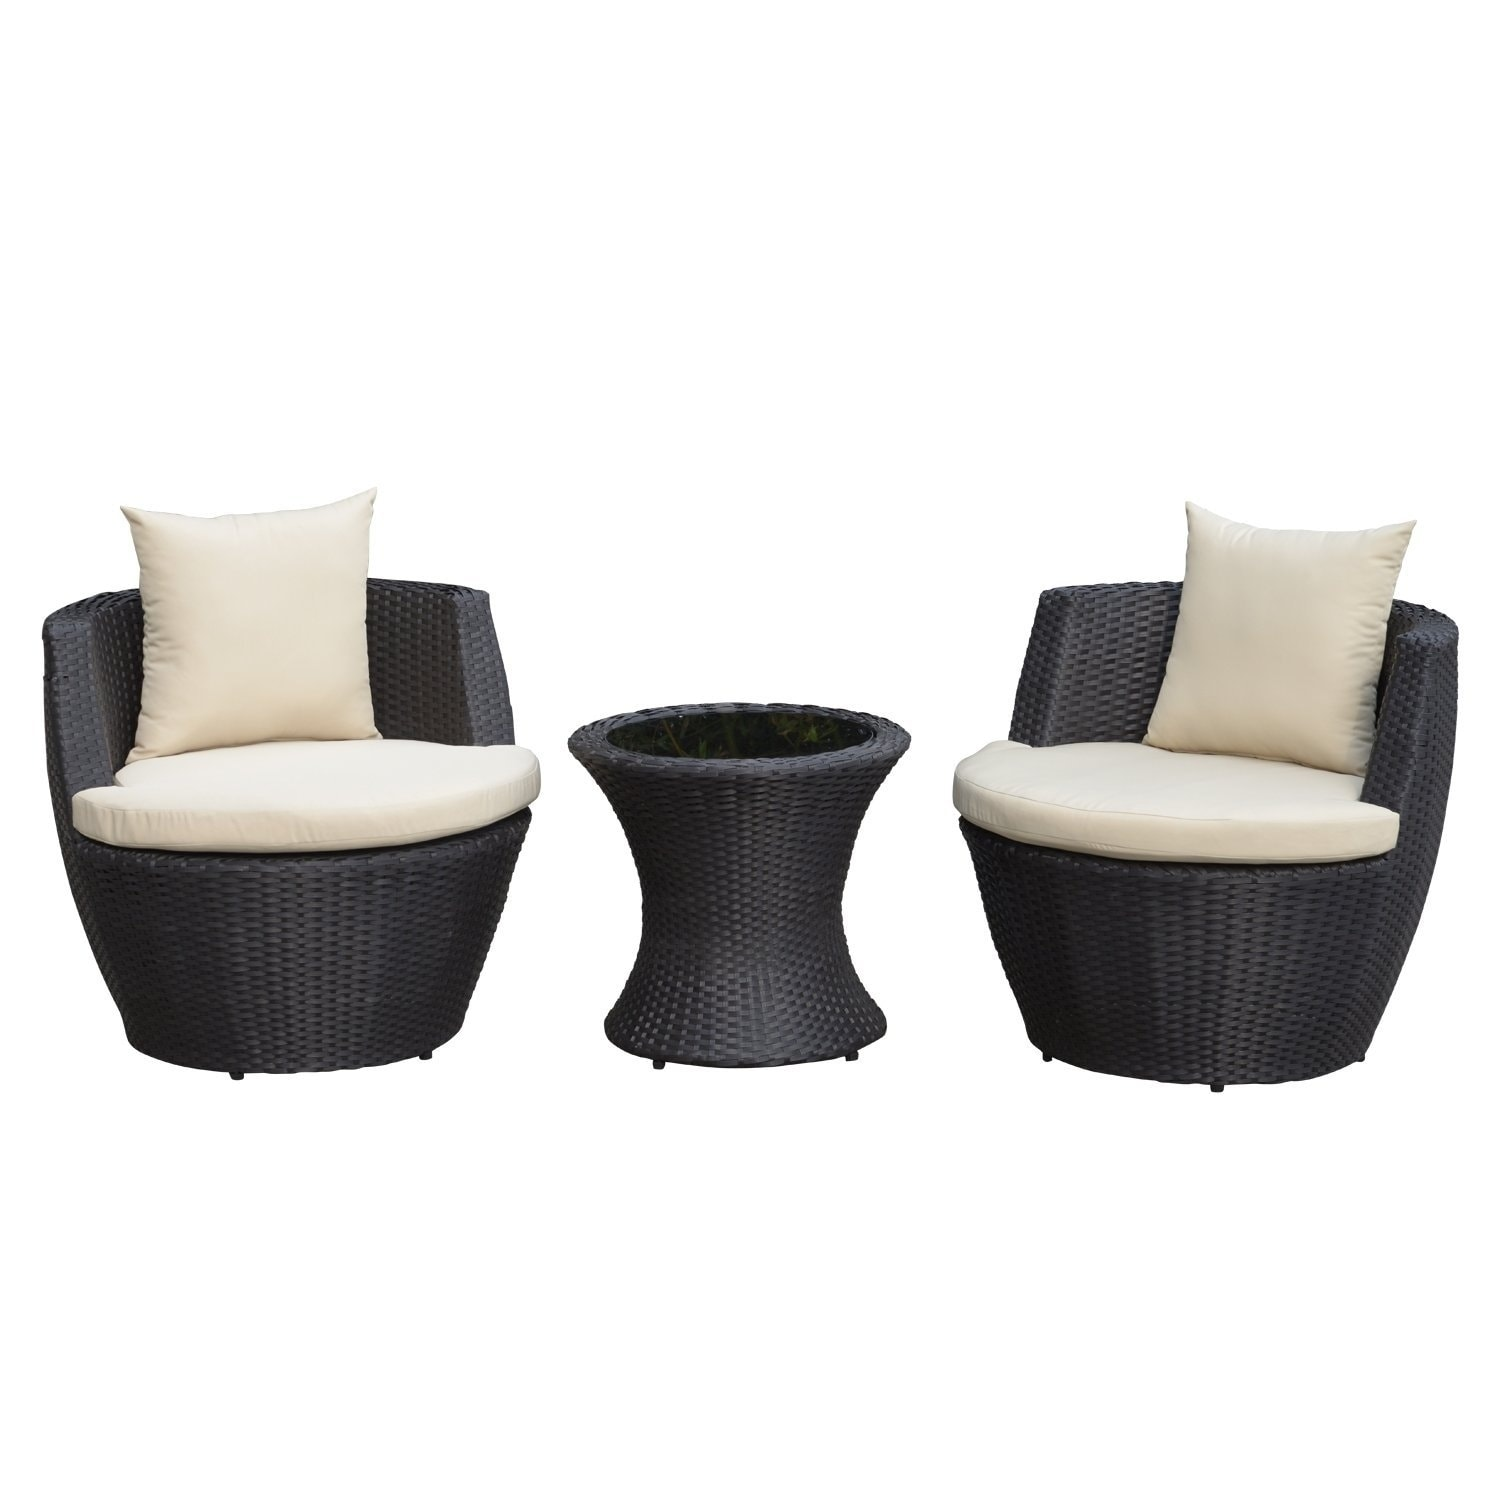 Rattan Egg Chair Set Rattan Nest Chair